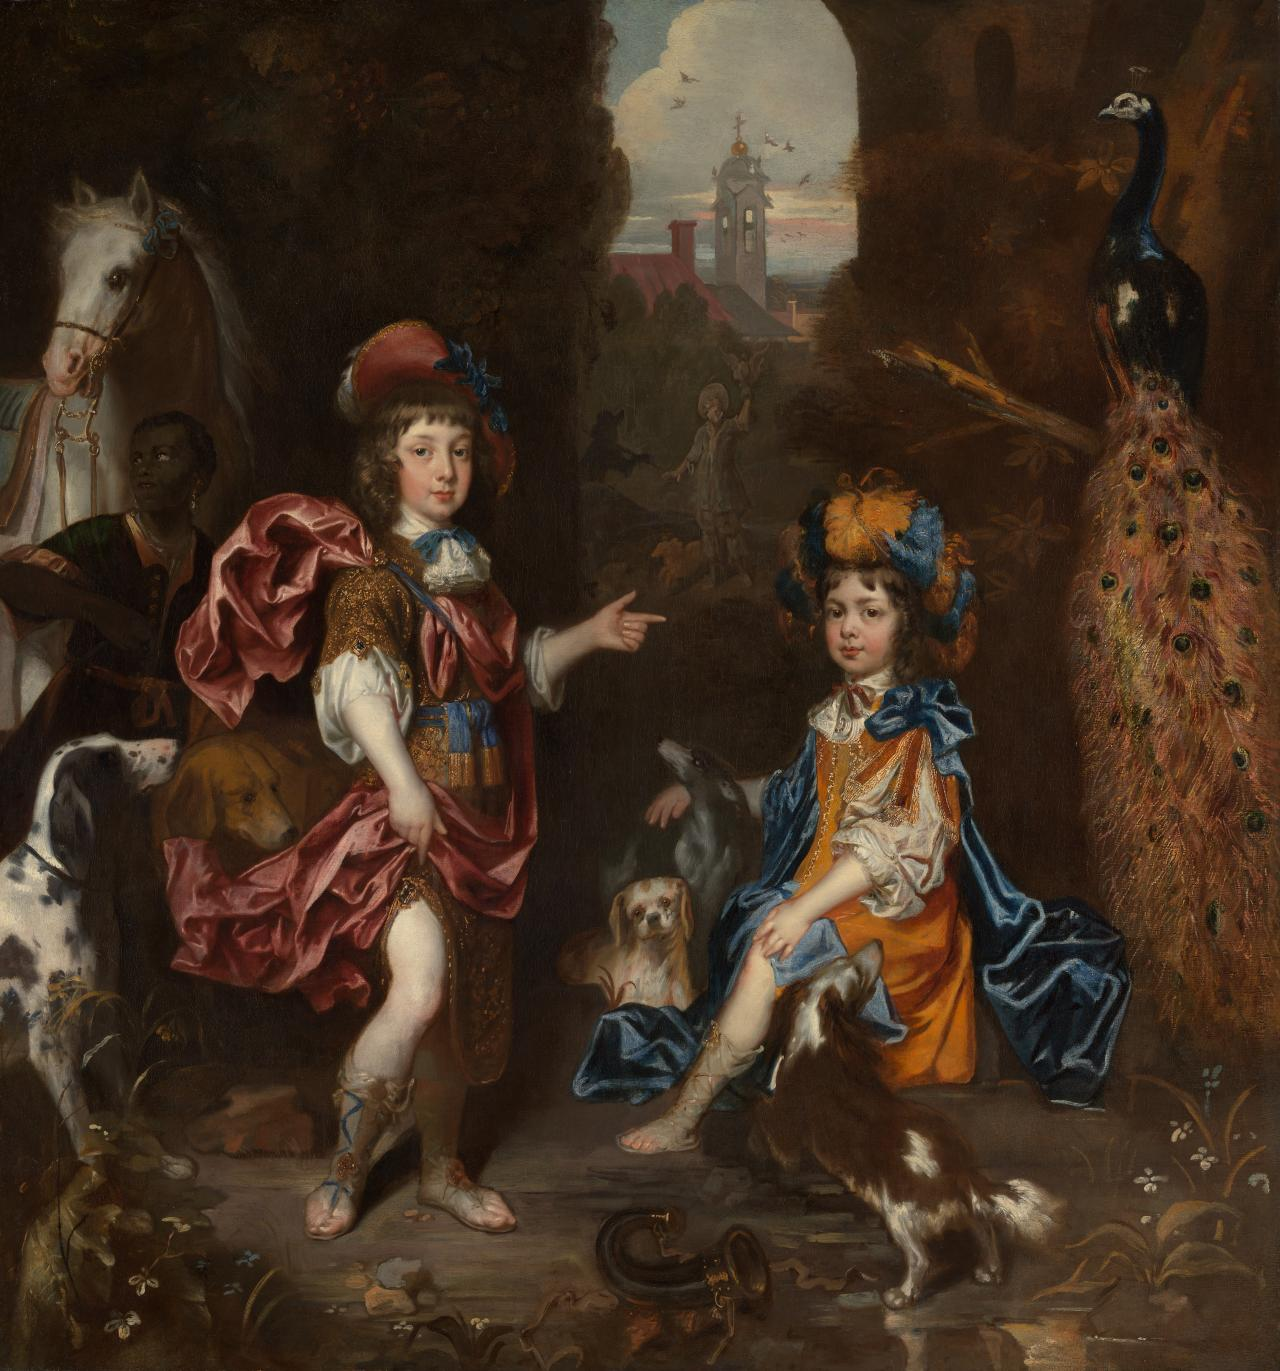 Edward Henry Lee, 1st Earl of Lichfield, and his wife Charlotte Fitzroy as children